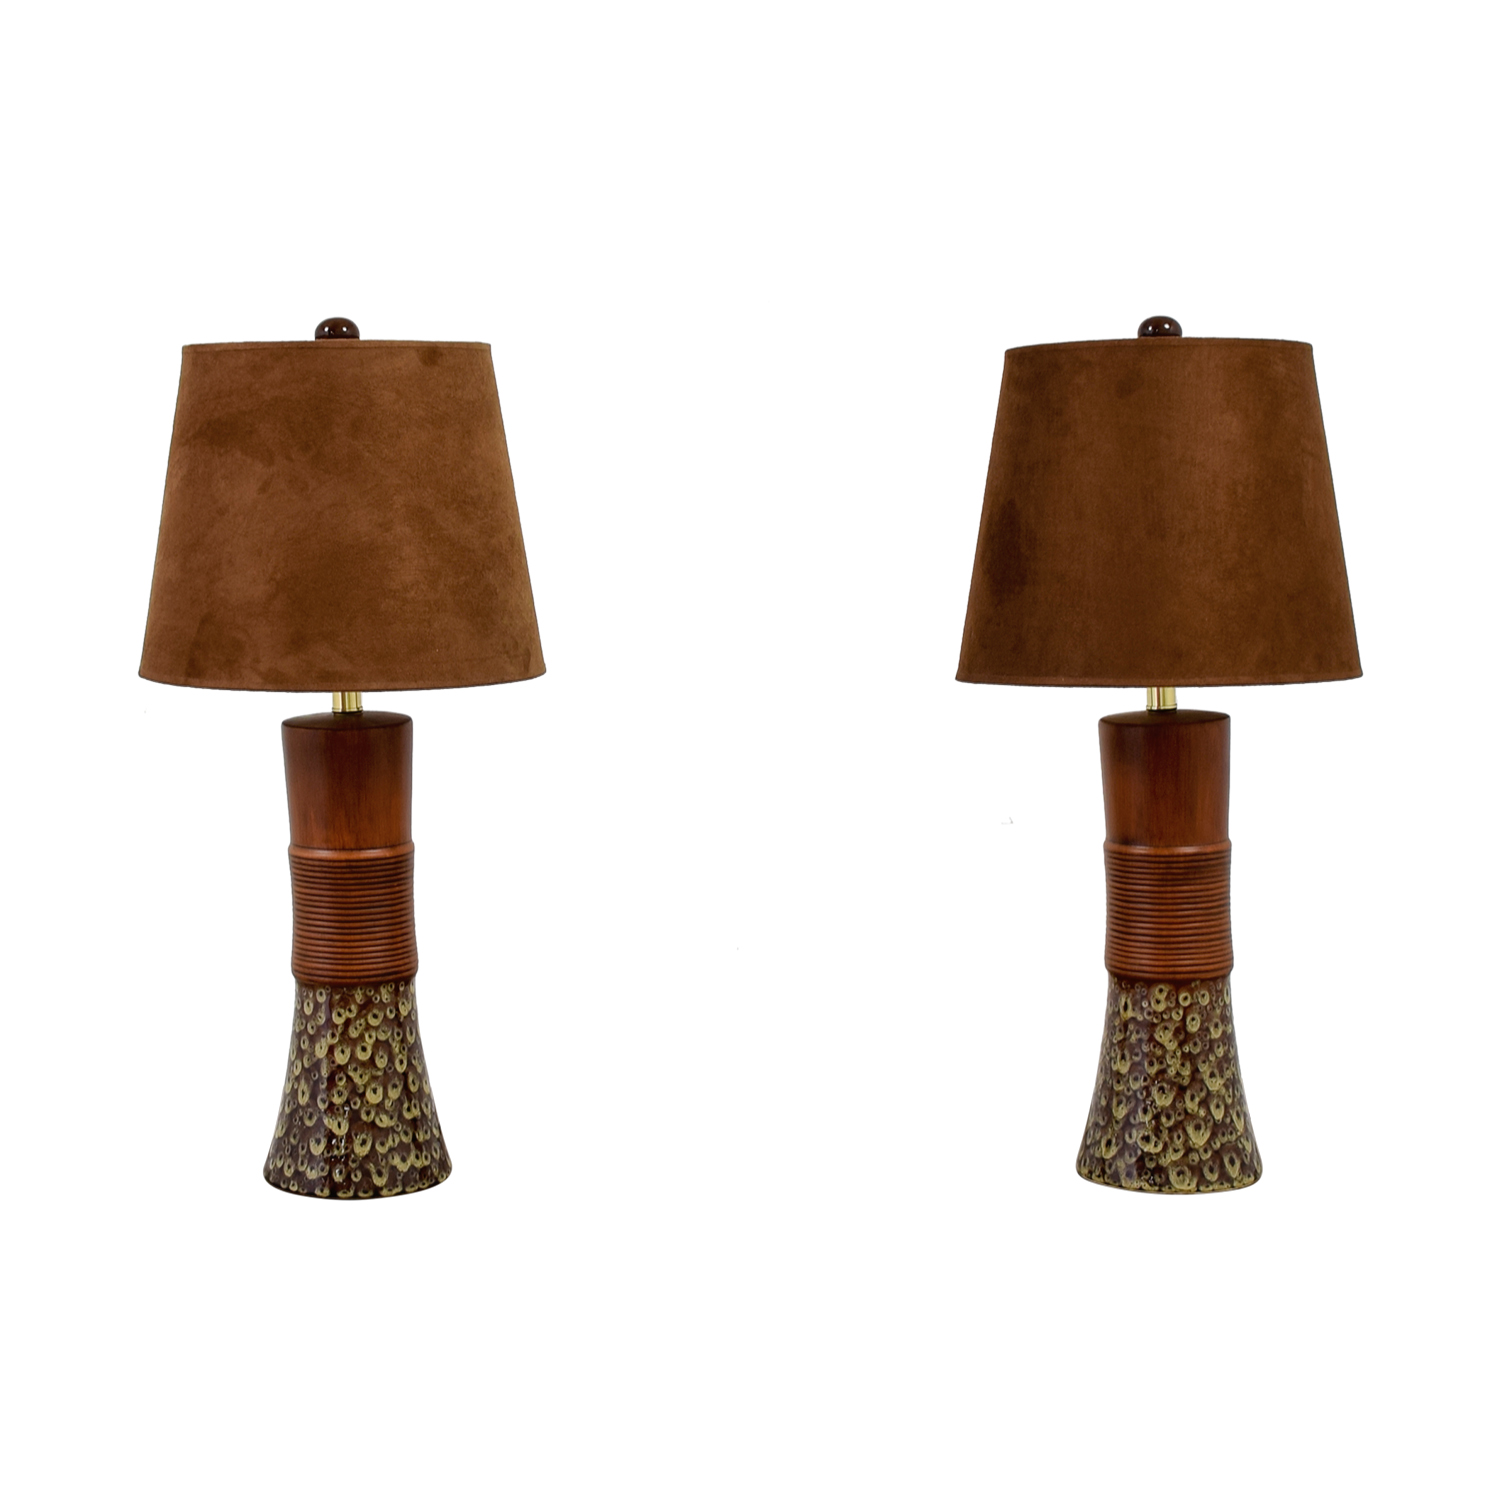 Ashley Furniture Ashley Furniture Ceramic Table Lamps Lamps